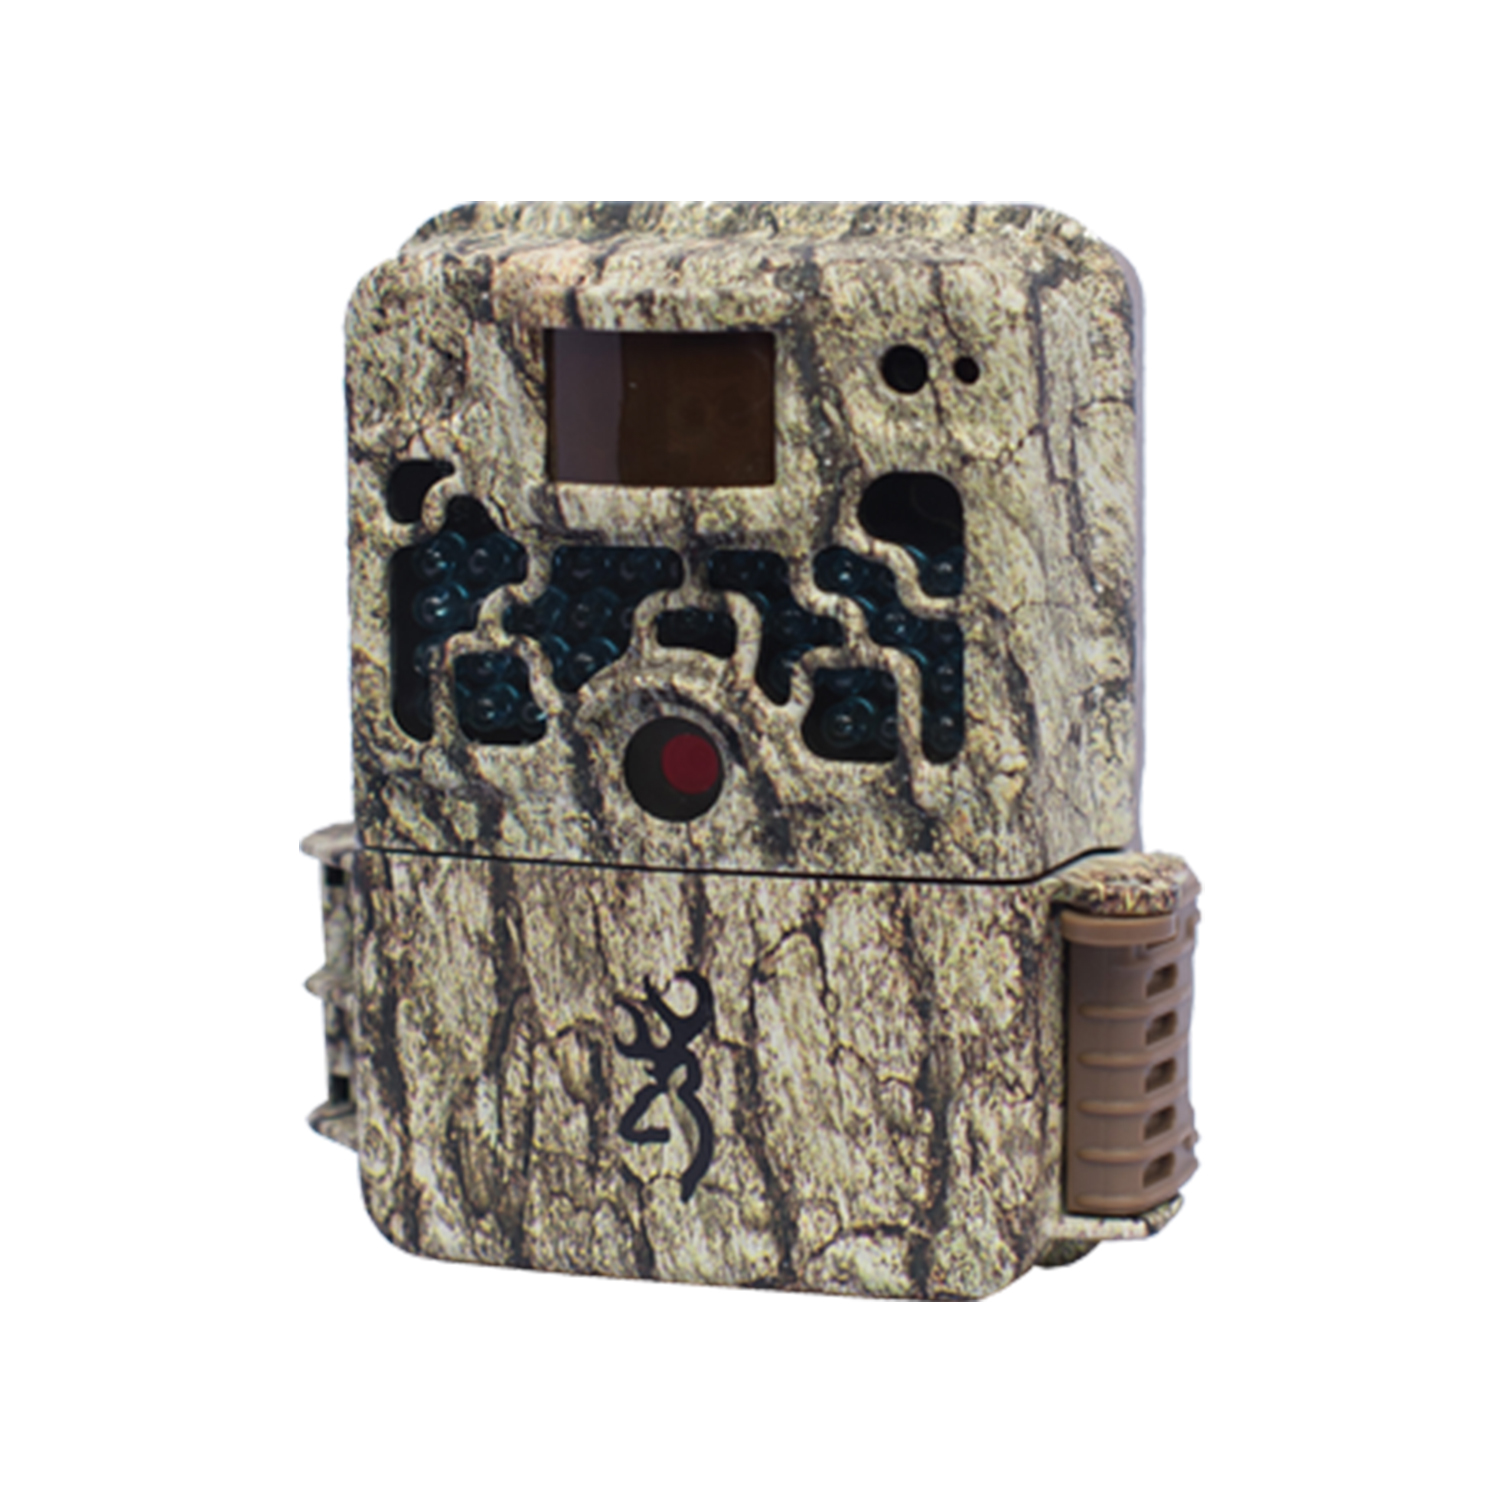 """Browning Strike Force:  Game Camera   With 10 megapixels, a lightning fast, 0.67-second trigger speed and a 100-foot plus flash range, Browning's Strike Force is the smallest high-performance trail camera in the industry. At 5""""x 4""""x 2.5"""", the compact camera shoots HD videos up to two-minutes long with sound, has a time-lapse camera mode, and is programmable to shoot up to eight multi-shot images and up to six rapid-fire images. The camera's long battery life means you'll get up to 10,000 pictures on 6 AA batteries, and the SD card slot will accommodate up to 32GB. The camera also includes a 12-volt external power jack, TV out and USB port. Browning Buck Watch Timelapse viewersoftware also included.  MSRP: $179    www.browningtrailcameras.com"""